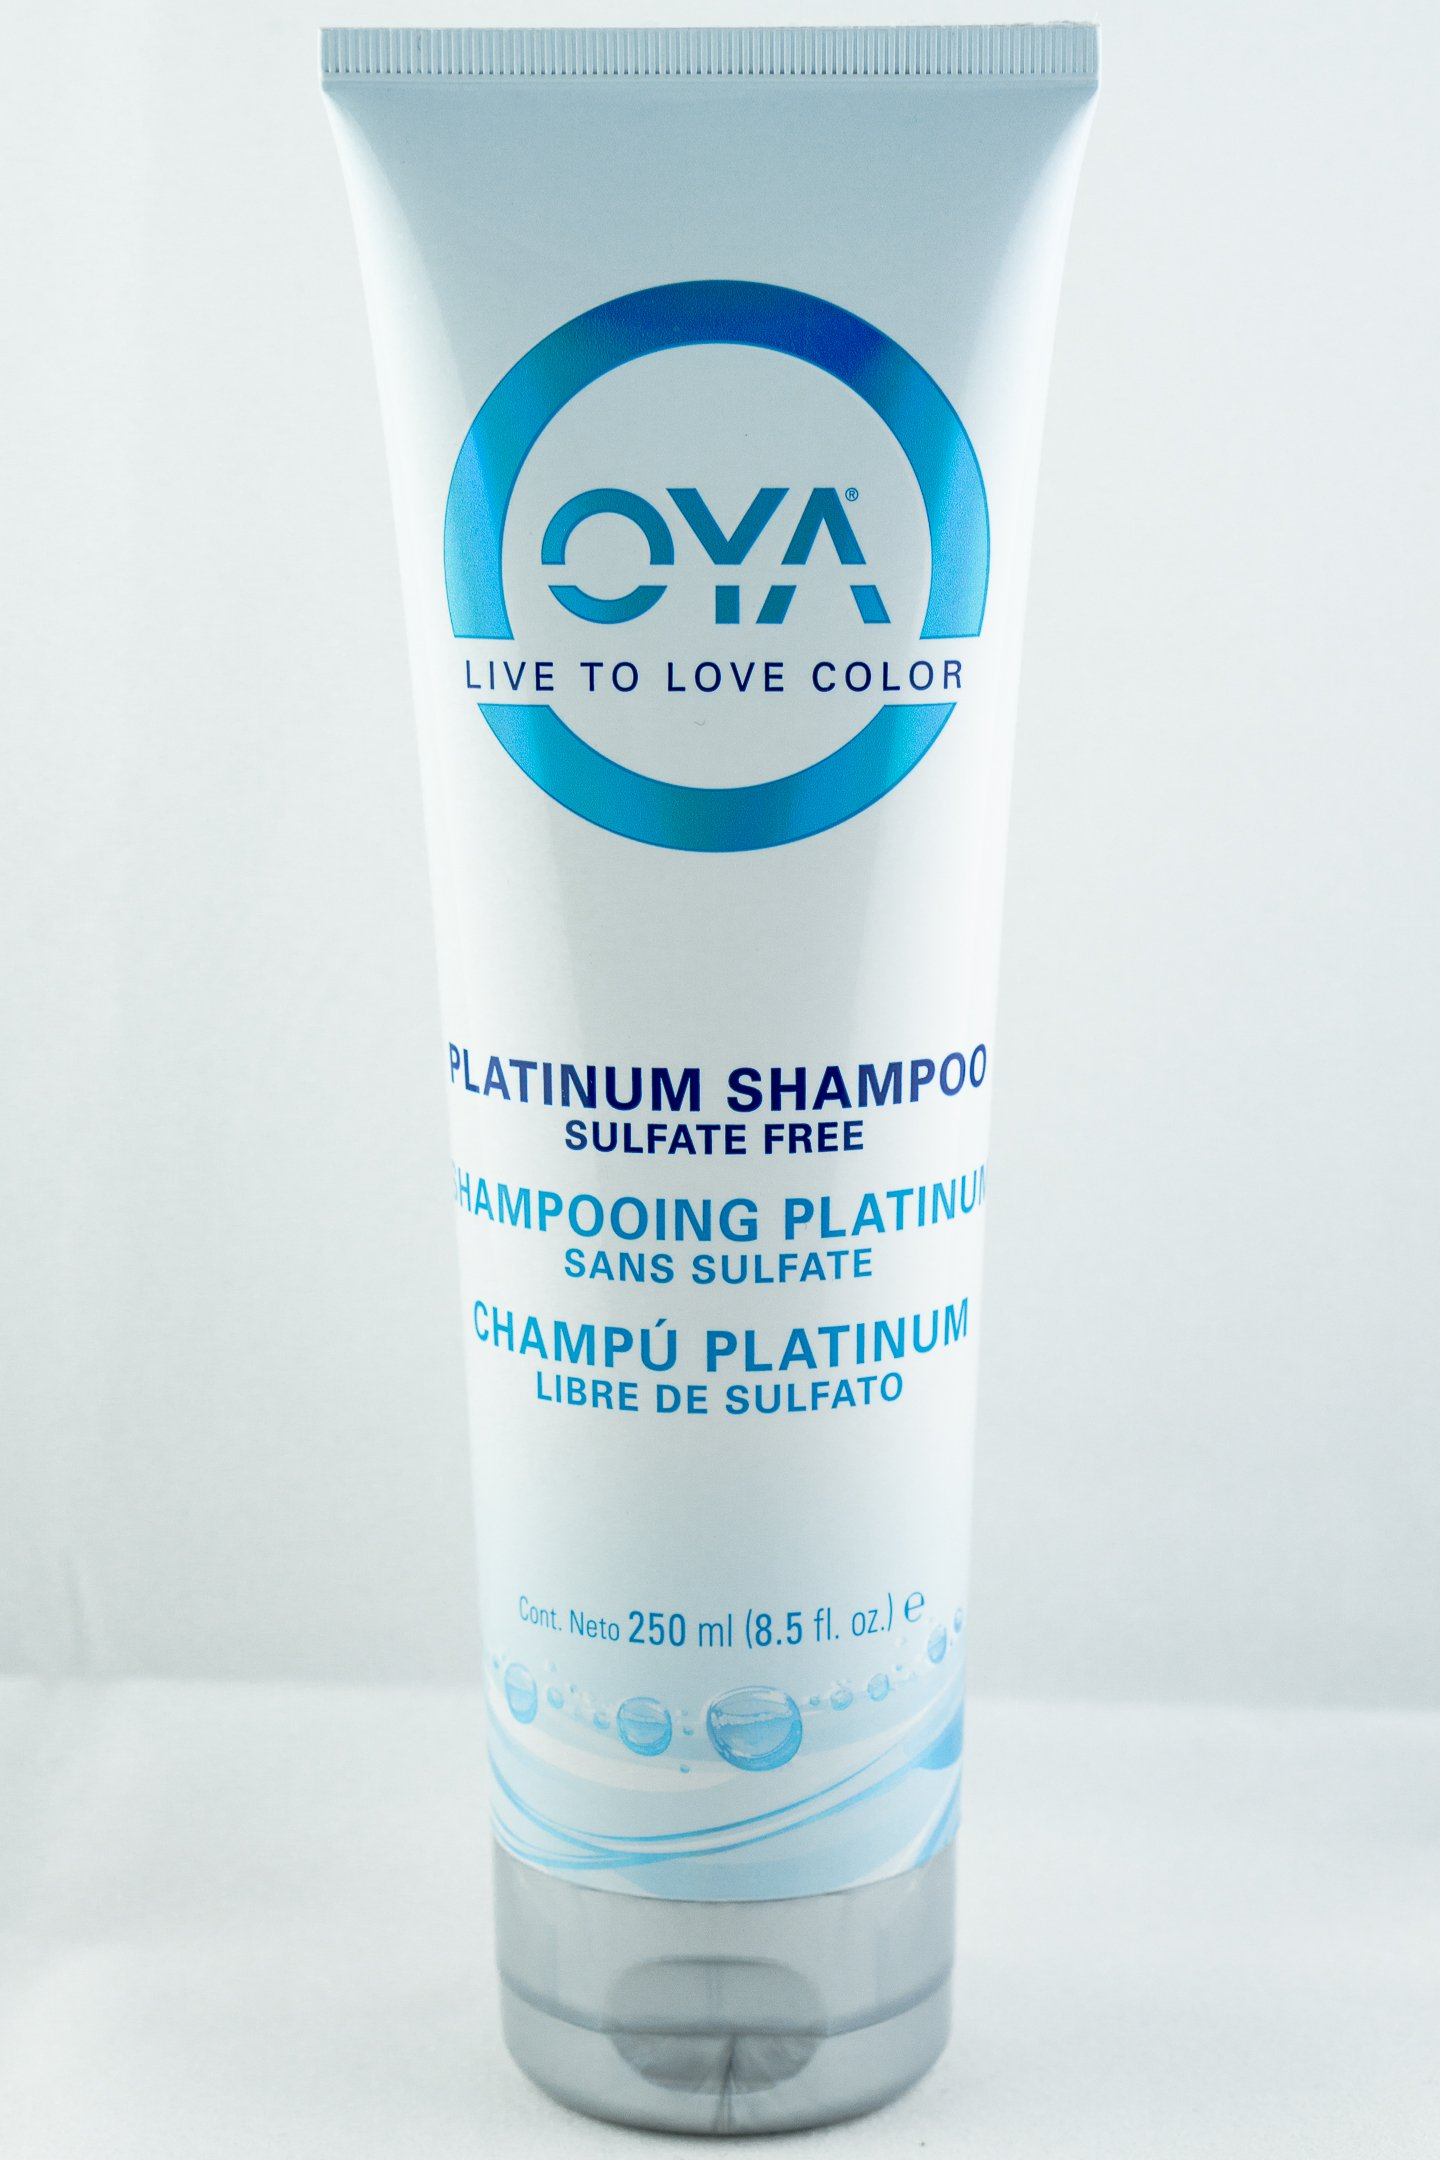 OYA Platinum Shampoo | Studio Trio Hair Salon